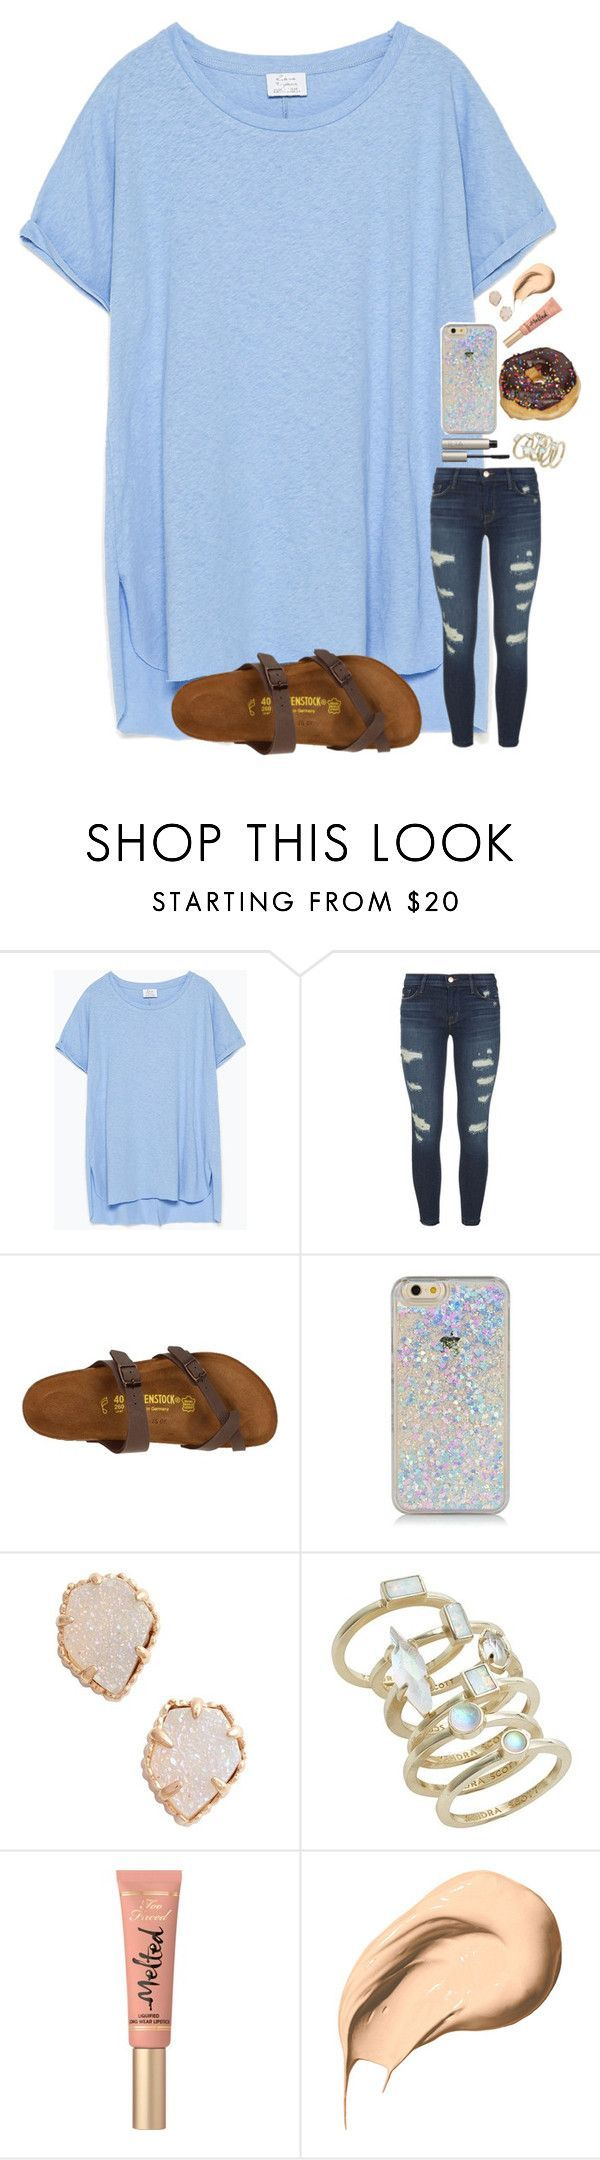 """""""blue ain't your color"""" by ab1525 ❤ liked on Polyvore featuring Zara, J Brand, Birkenstock, Kendra Scott, Too Faced Cosmetics, Bobbi Brown Cosmetics and Ilia"""